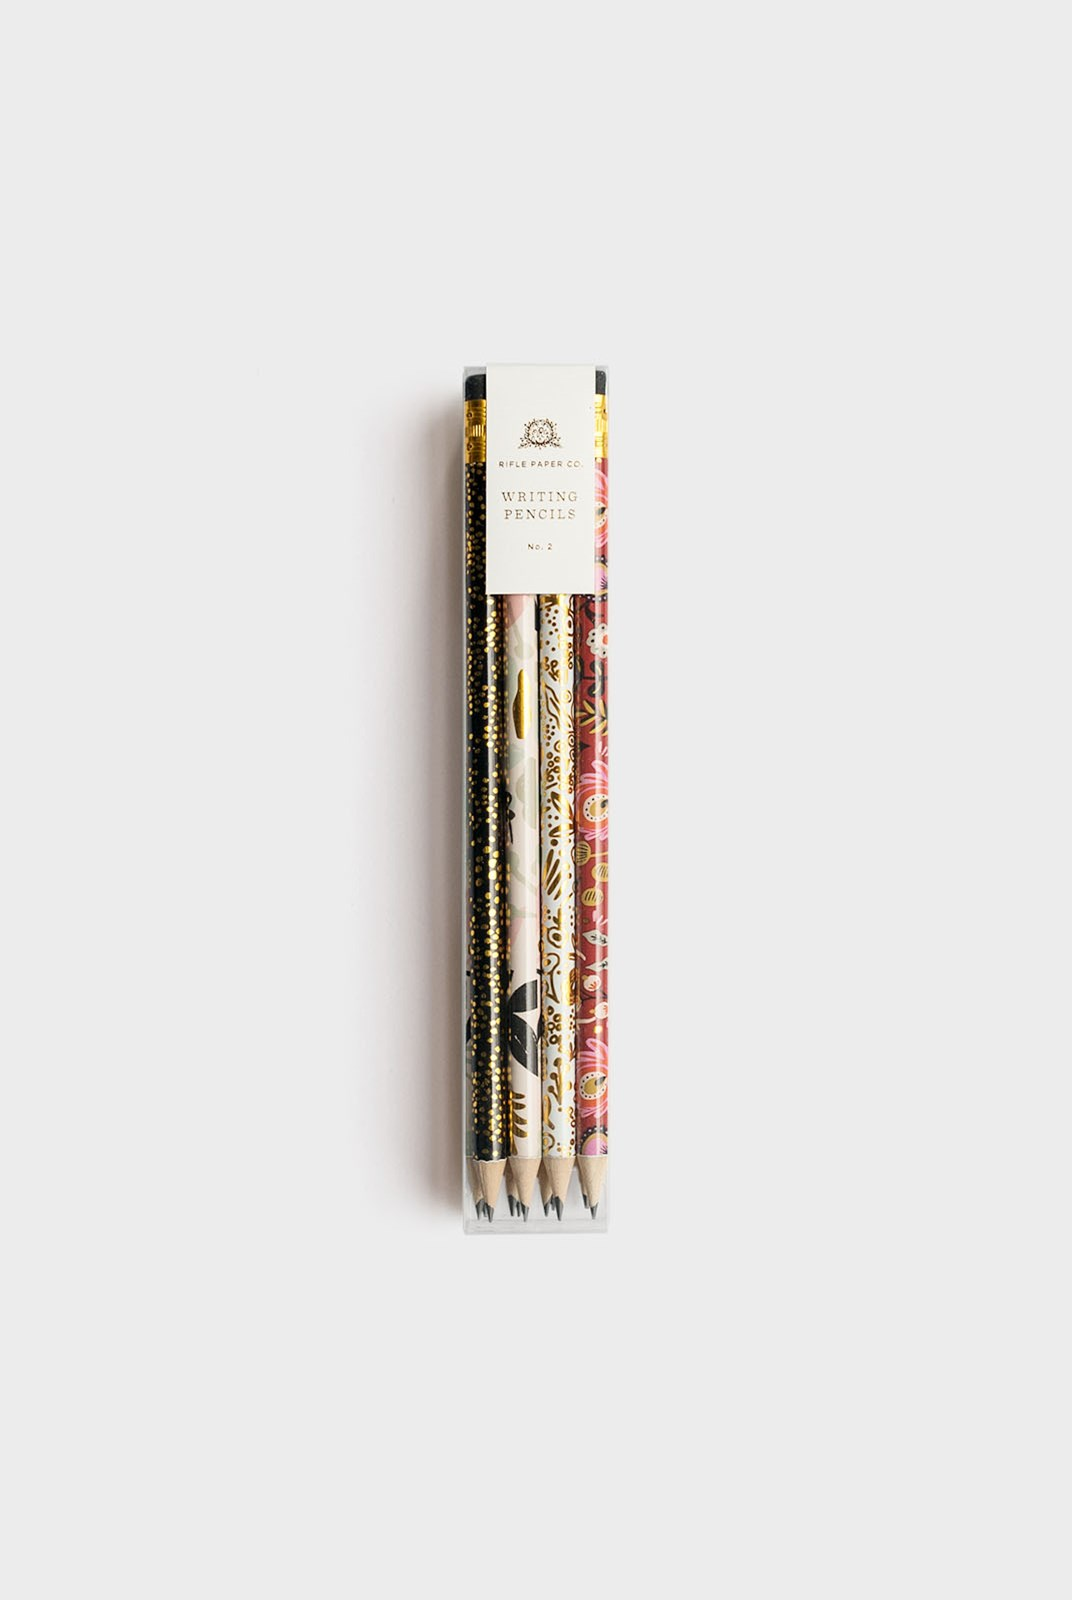 Rifle Paper Co - Graphite Pencils - Set of 12 - Modernist